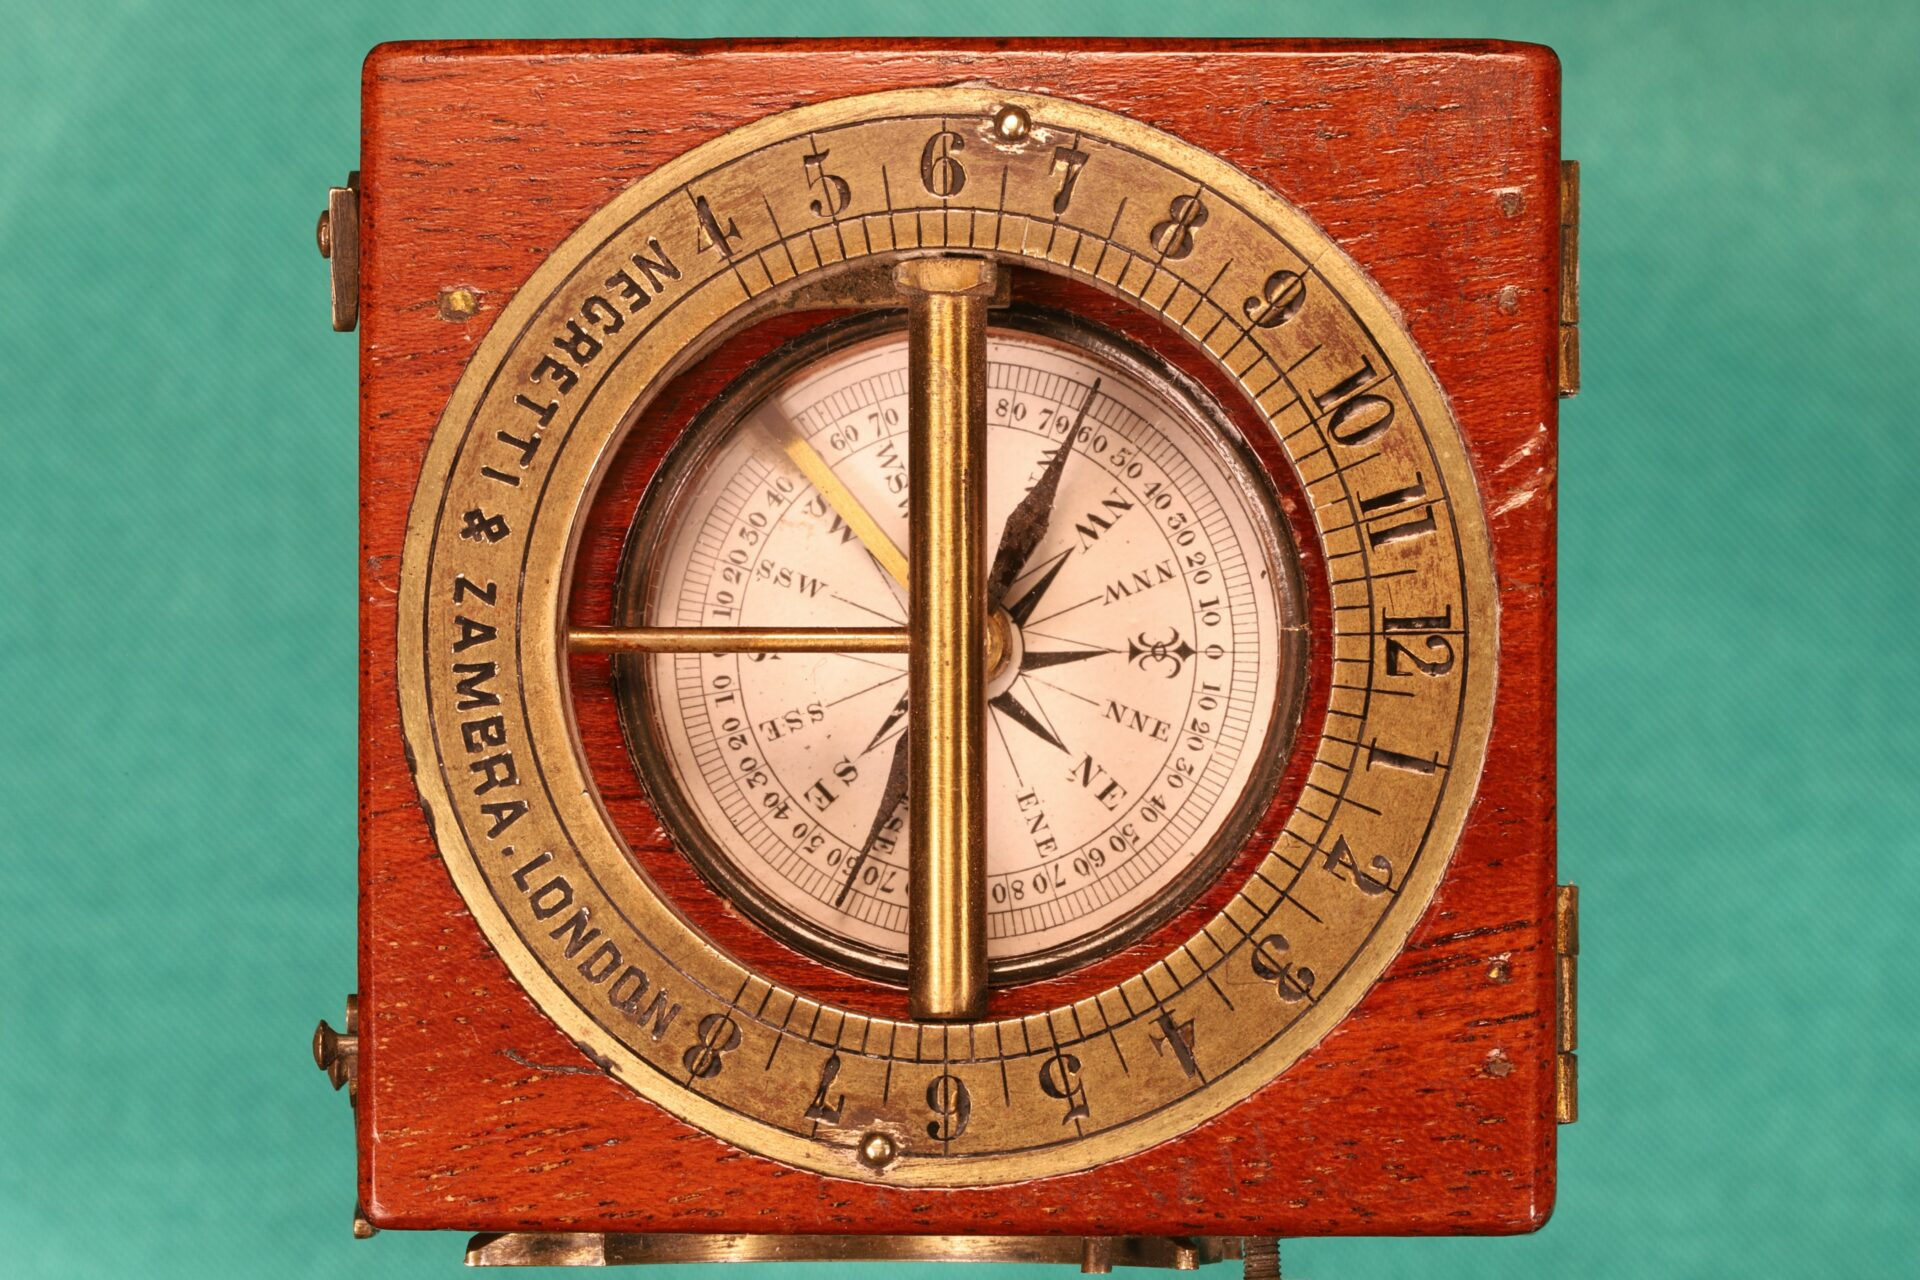 Image of closed Francis Barker Equinoctial Compass Retailed by Negretti & Zambra c1870 taken from above